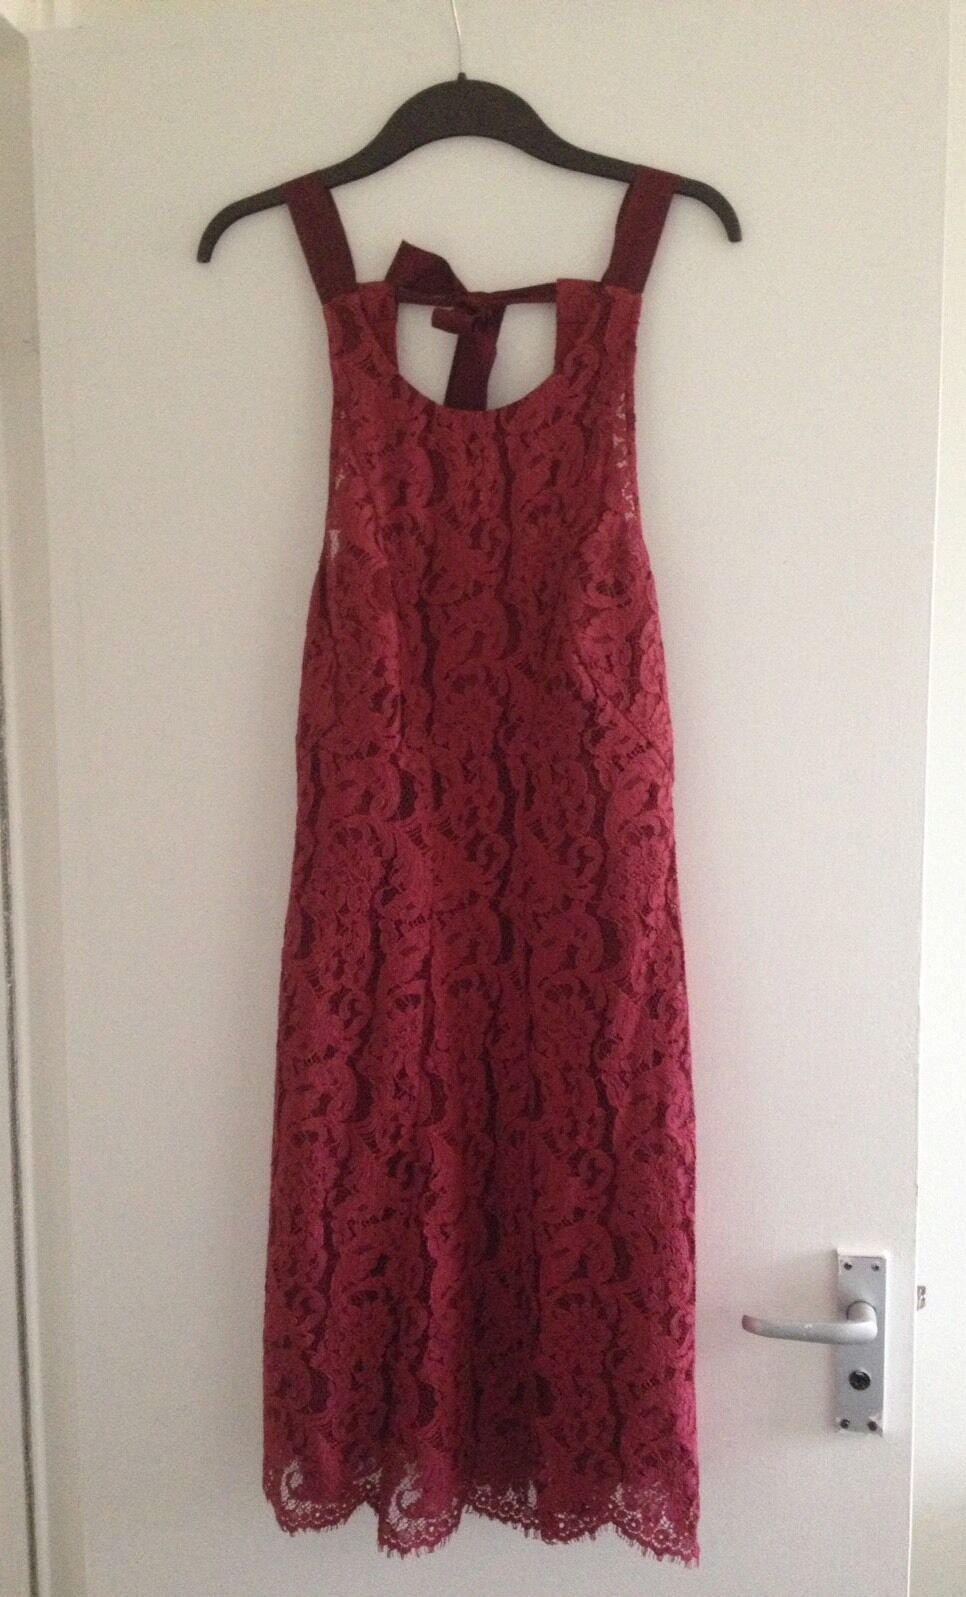 BNWOT Ladies Maroon Burgundy Lace Monsoon Knee Length Sleeveless Dress - Size 12